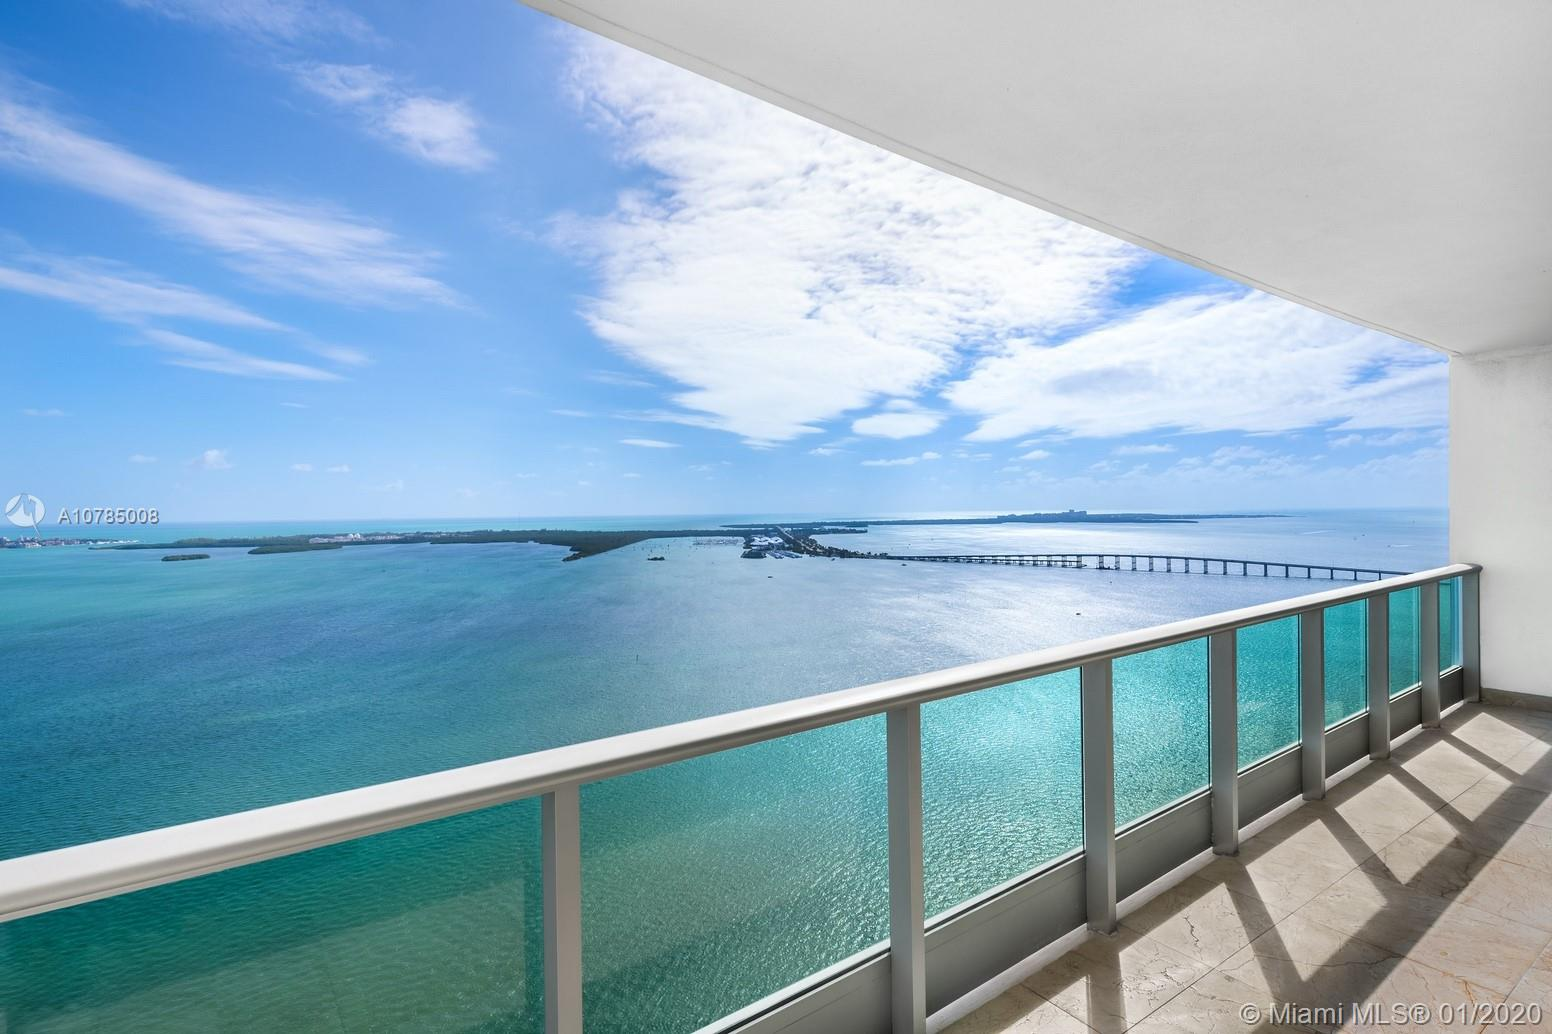 Spectacular 3BR/3BA/3 ASSIGNED PARKING SPACES + 1 Complementary Valet Parking & 1 storage unit. Fabulous living on an exclusive waterfront real estate location in the very center of Miami. Features expansive panoramas of Miami's stunning skyline and unobstructed ocean view. Elevator to your private foyer entry, gourmet/ Italian cabinetry kitchen with S.S. appliances. Marble floors throughout, floor to ceiling high impact windows, lots of natural light coming in. Formal living & dining room. Impressive master bedroom with stunning water view & spacious bathroom including Roman bathtub & separate tempered glass shower. Enjoy the resort amenities like: the relaxing infinity water front pool & cabanas, spa, Jacuzzi, gym, rooftop party room & other exclusive services. Check Virtual tour.